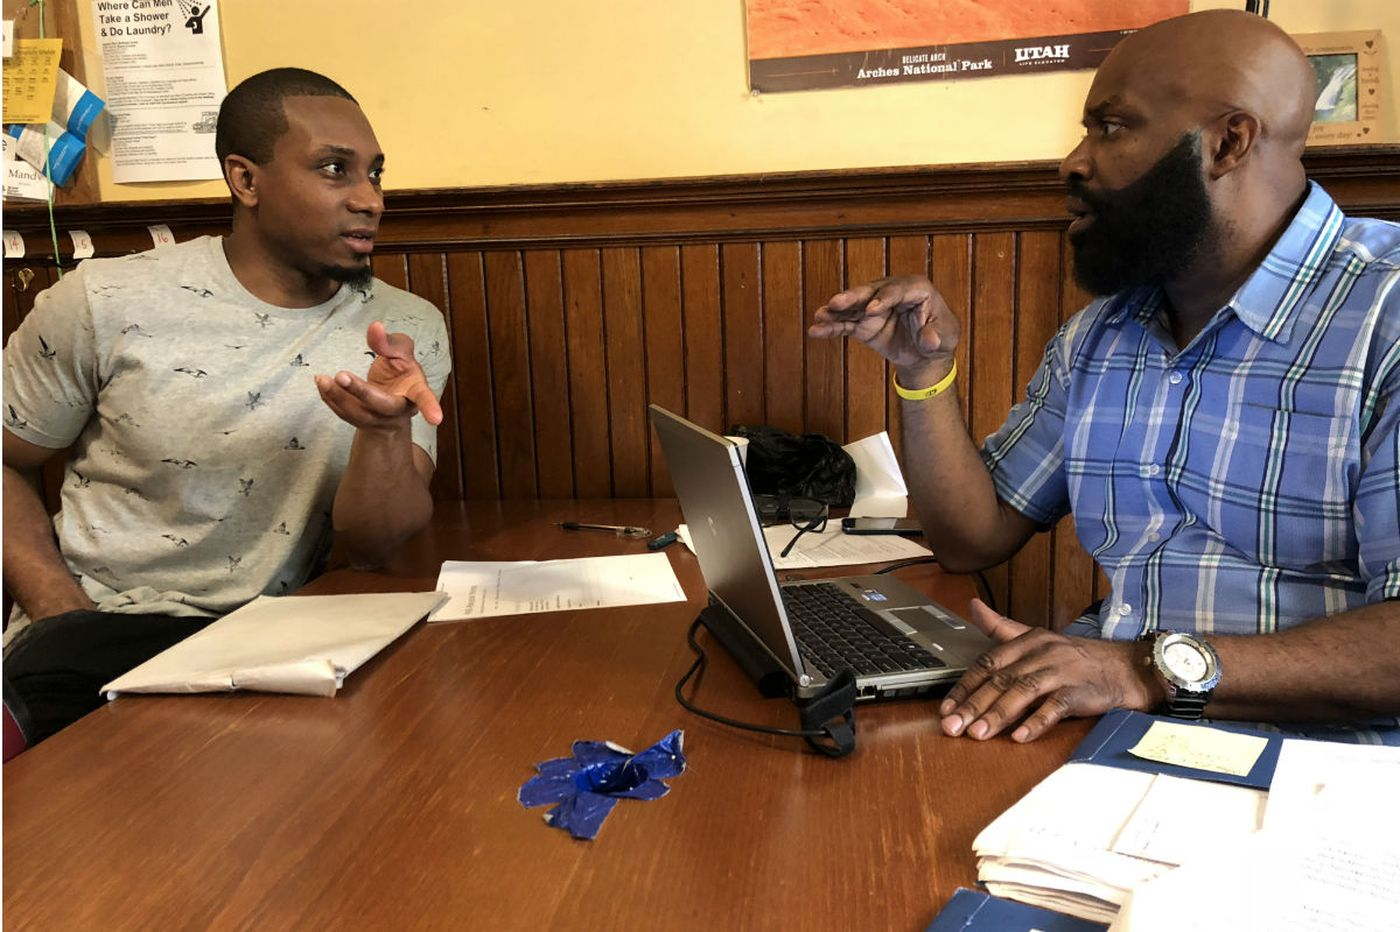 After 14 years in prison, ex-offender fills out his first resume